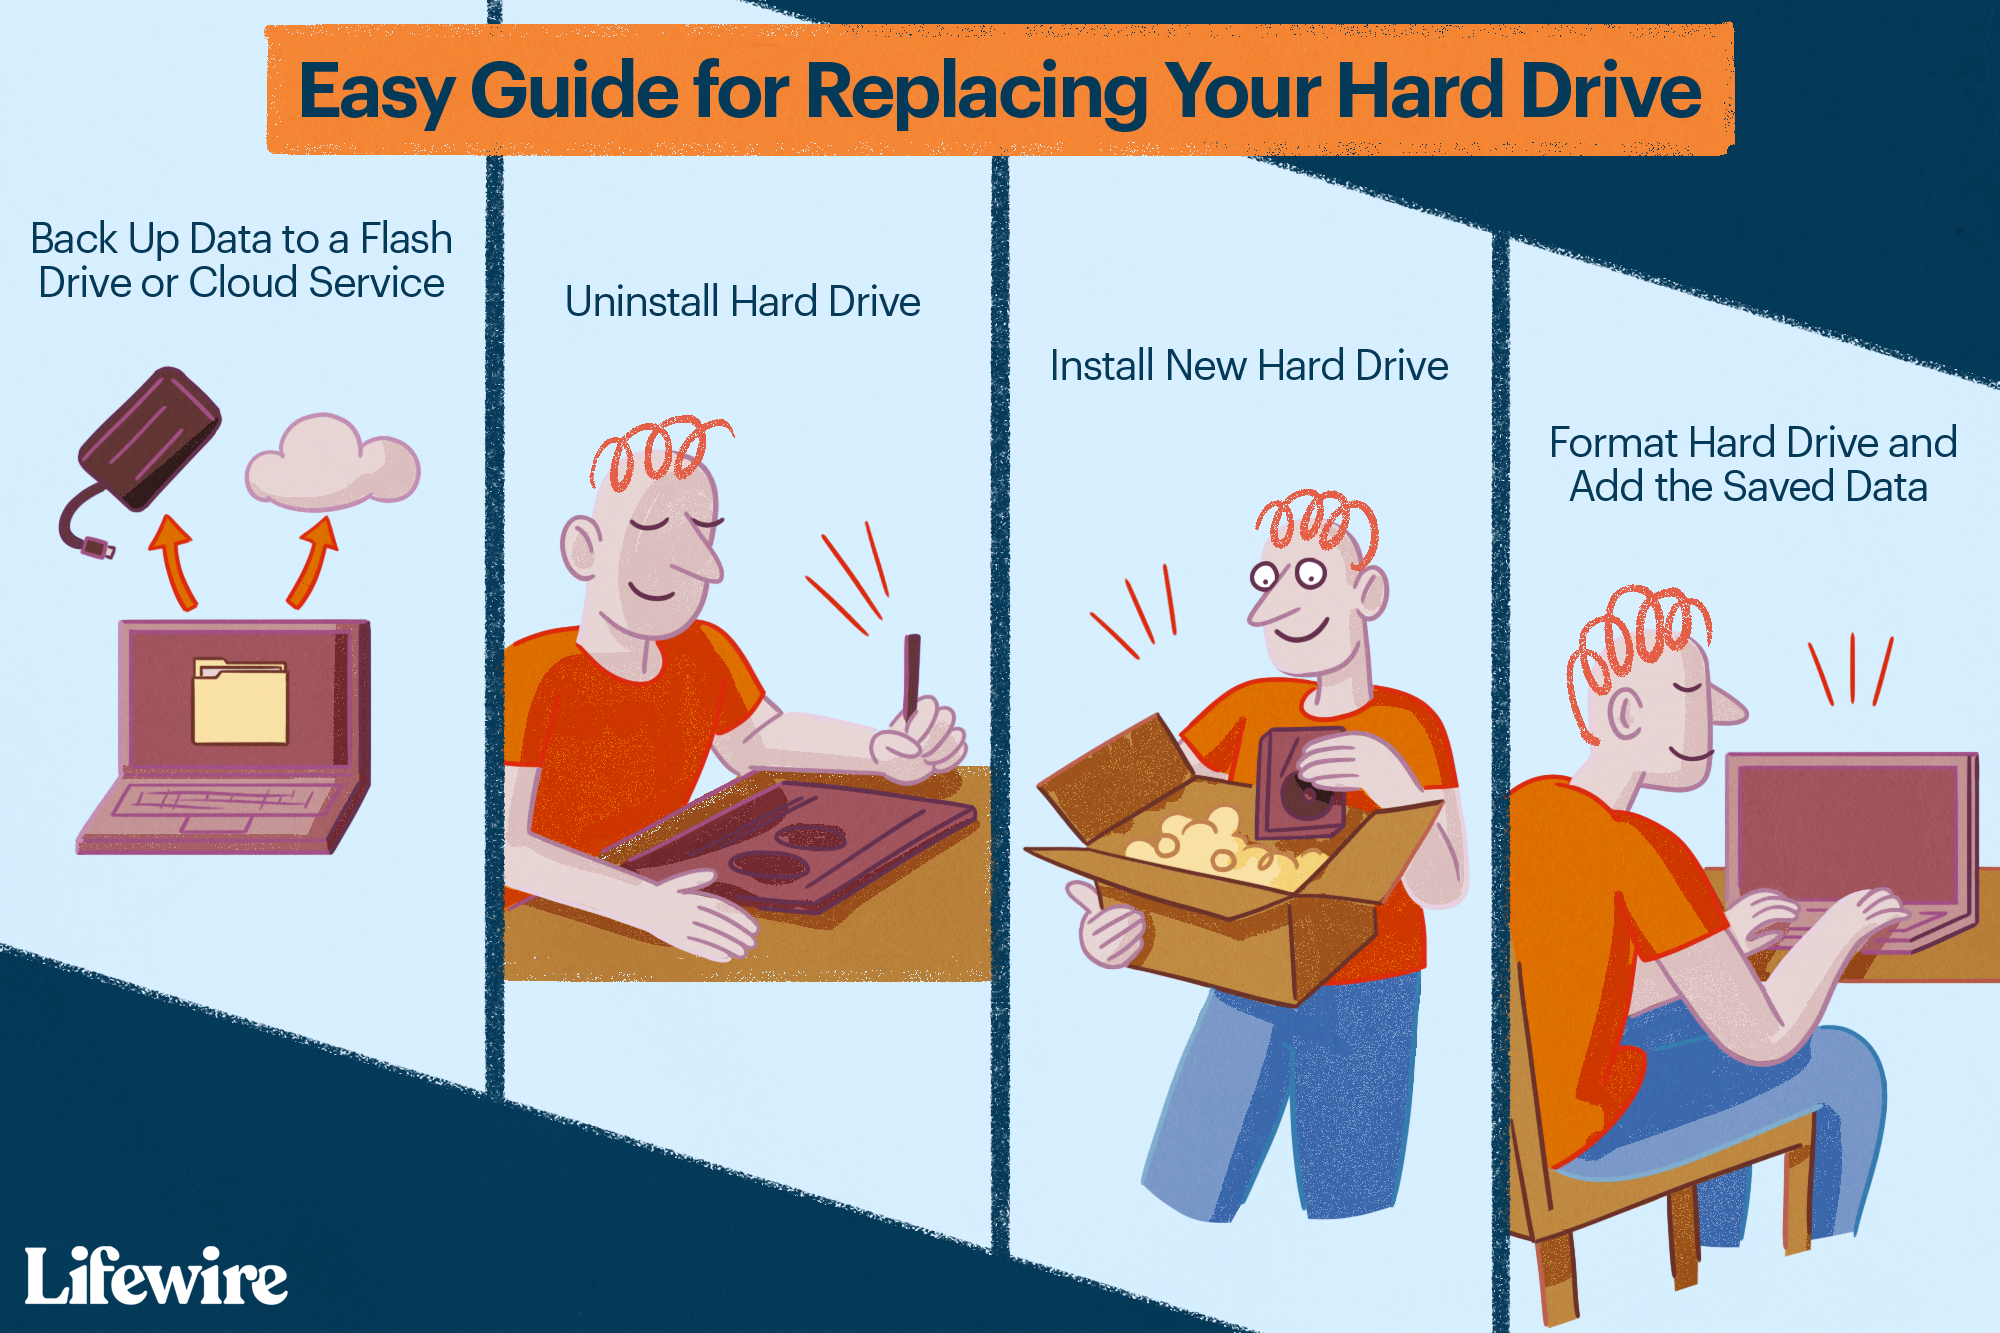 Four illustrations depicting the process of replacing a hard drive.